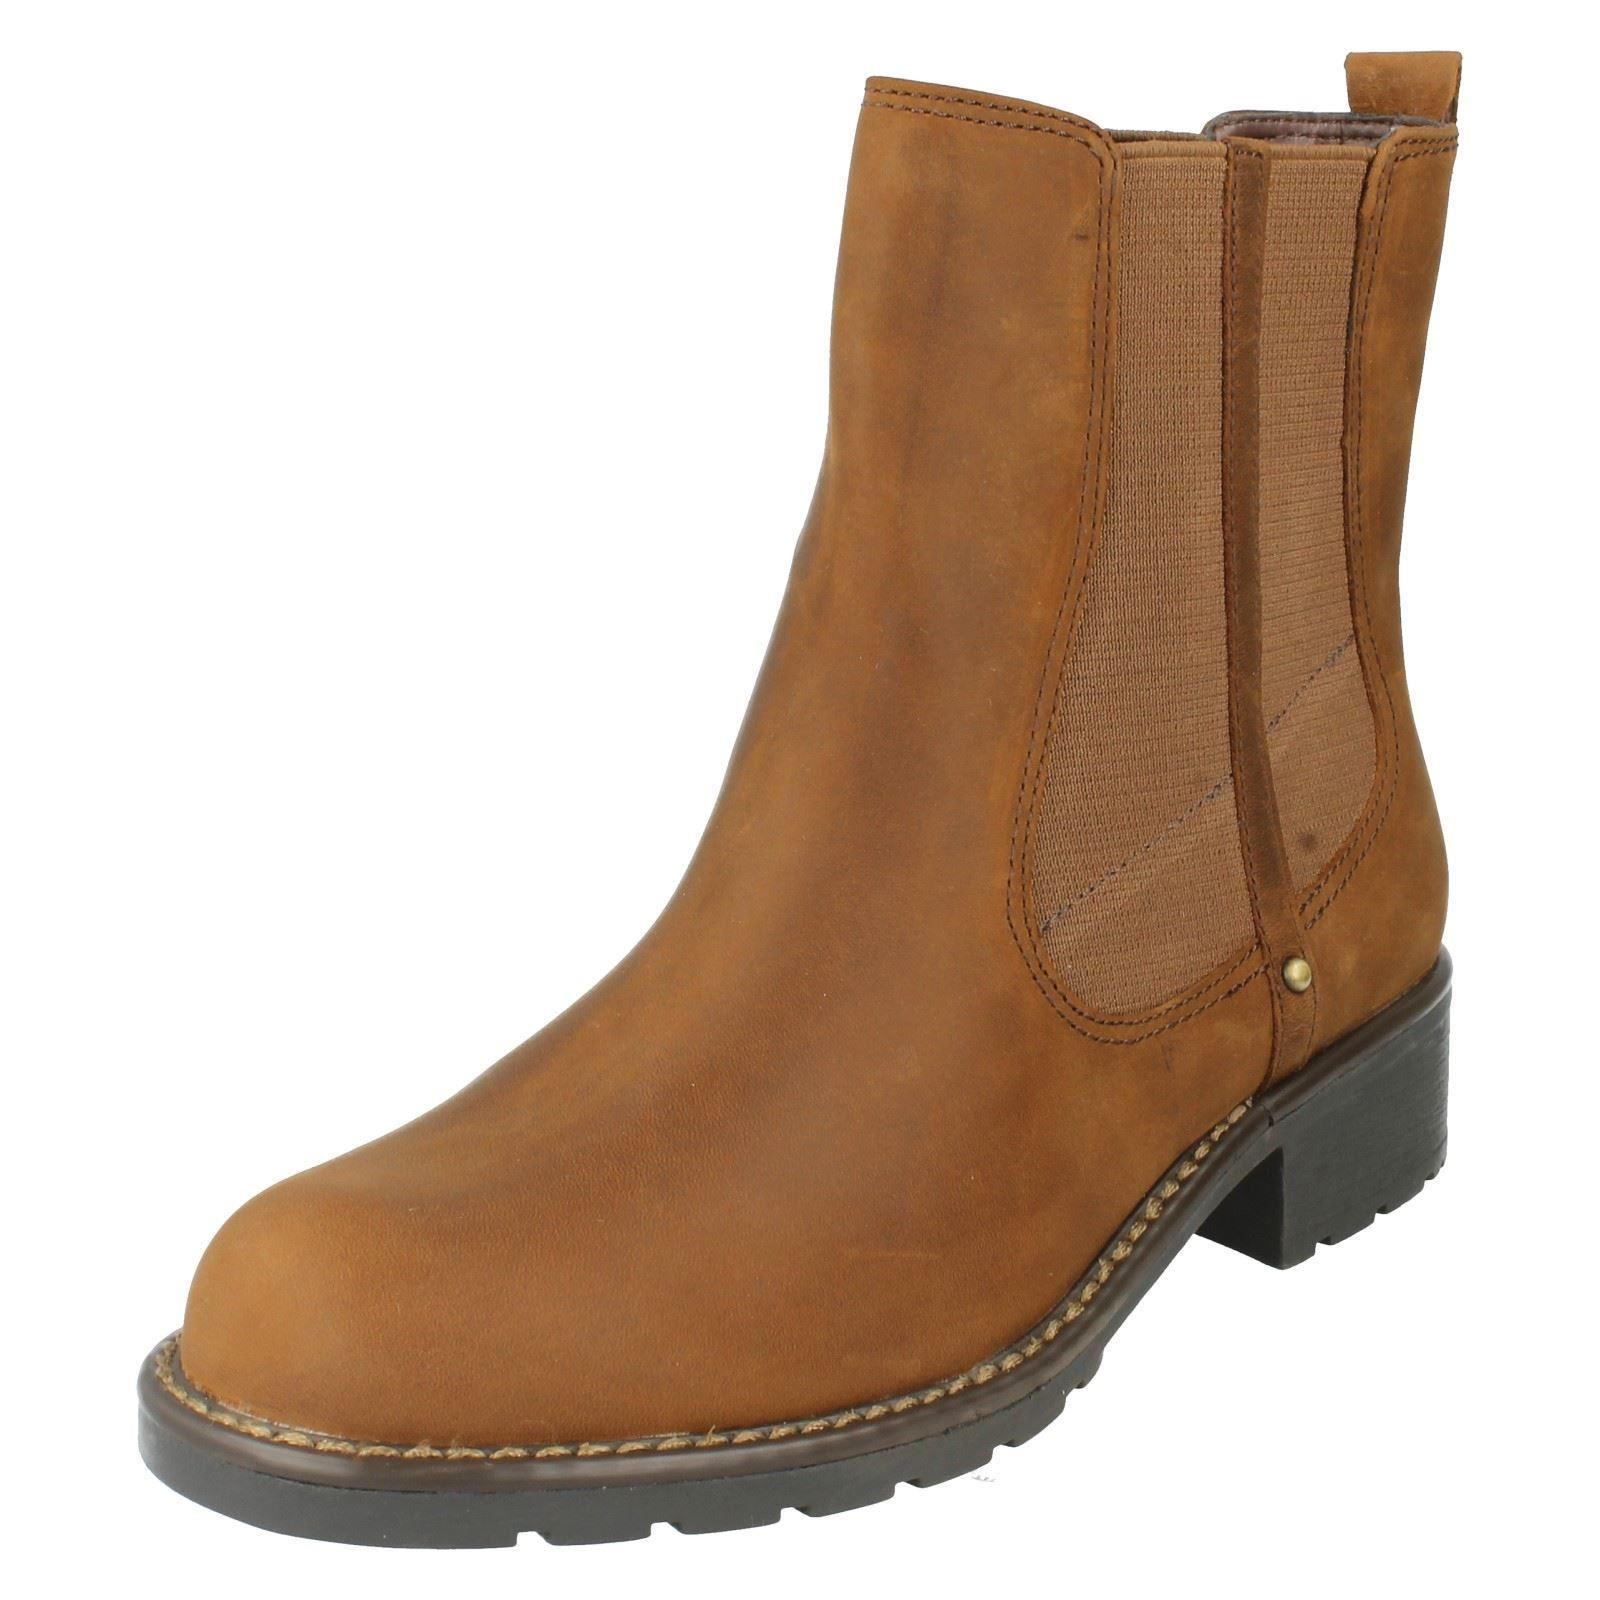 Clarks Ladies Shoes And Boots